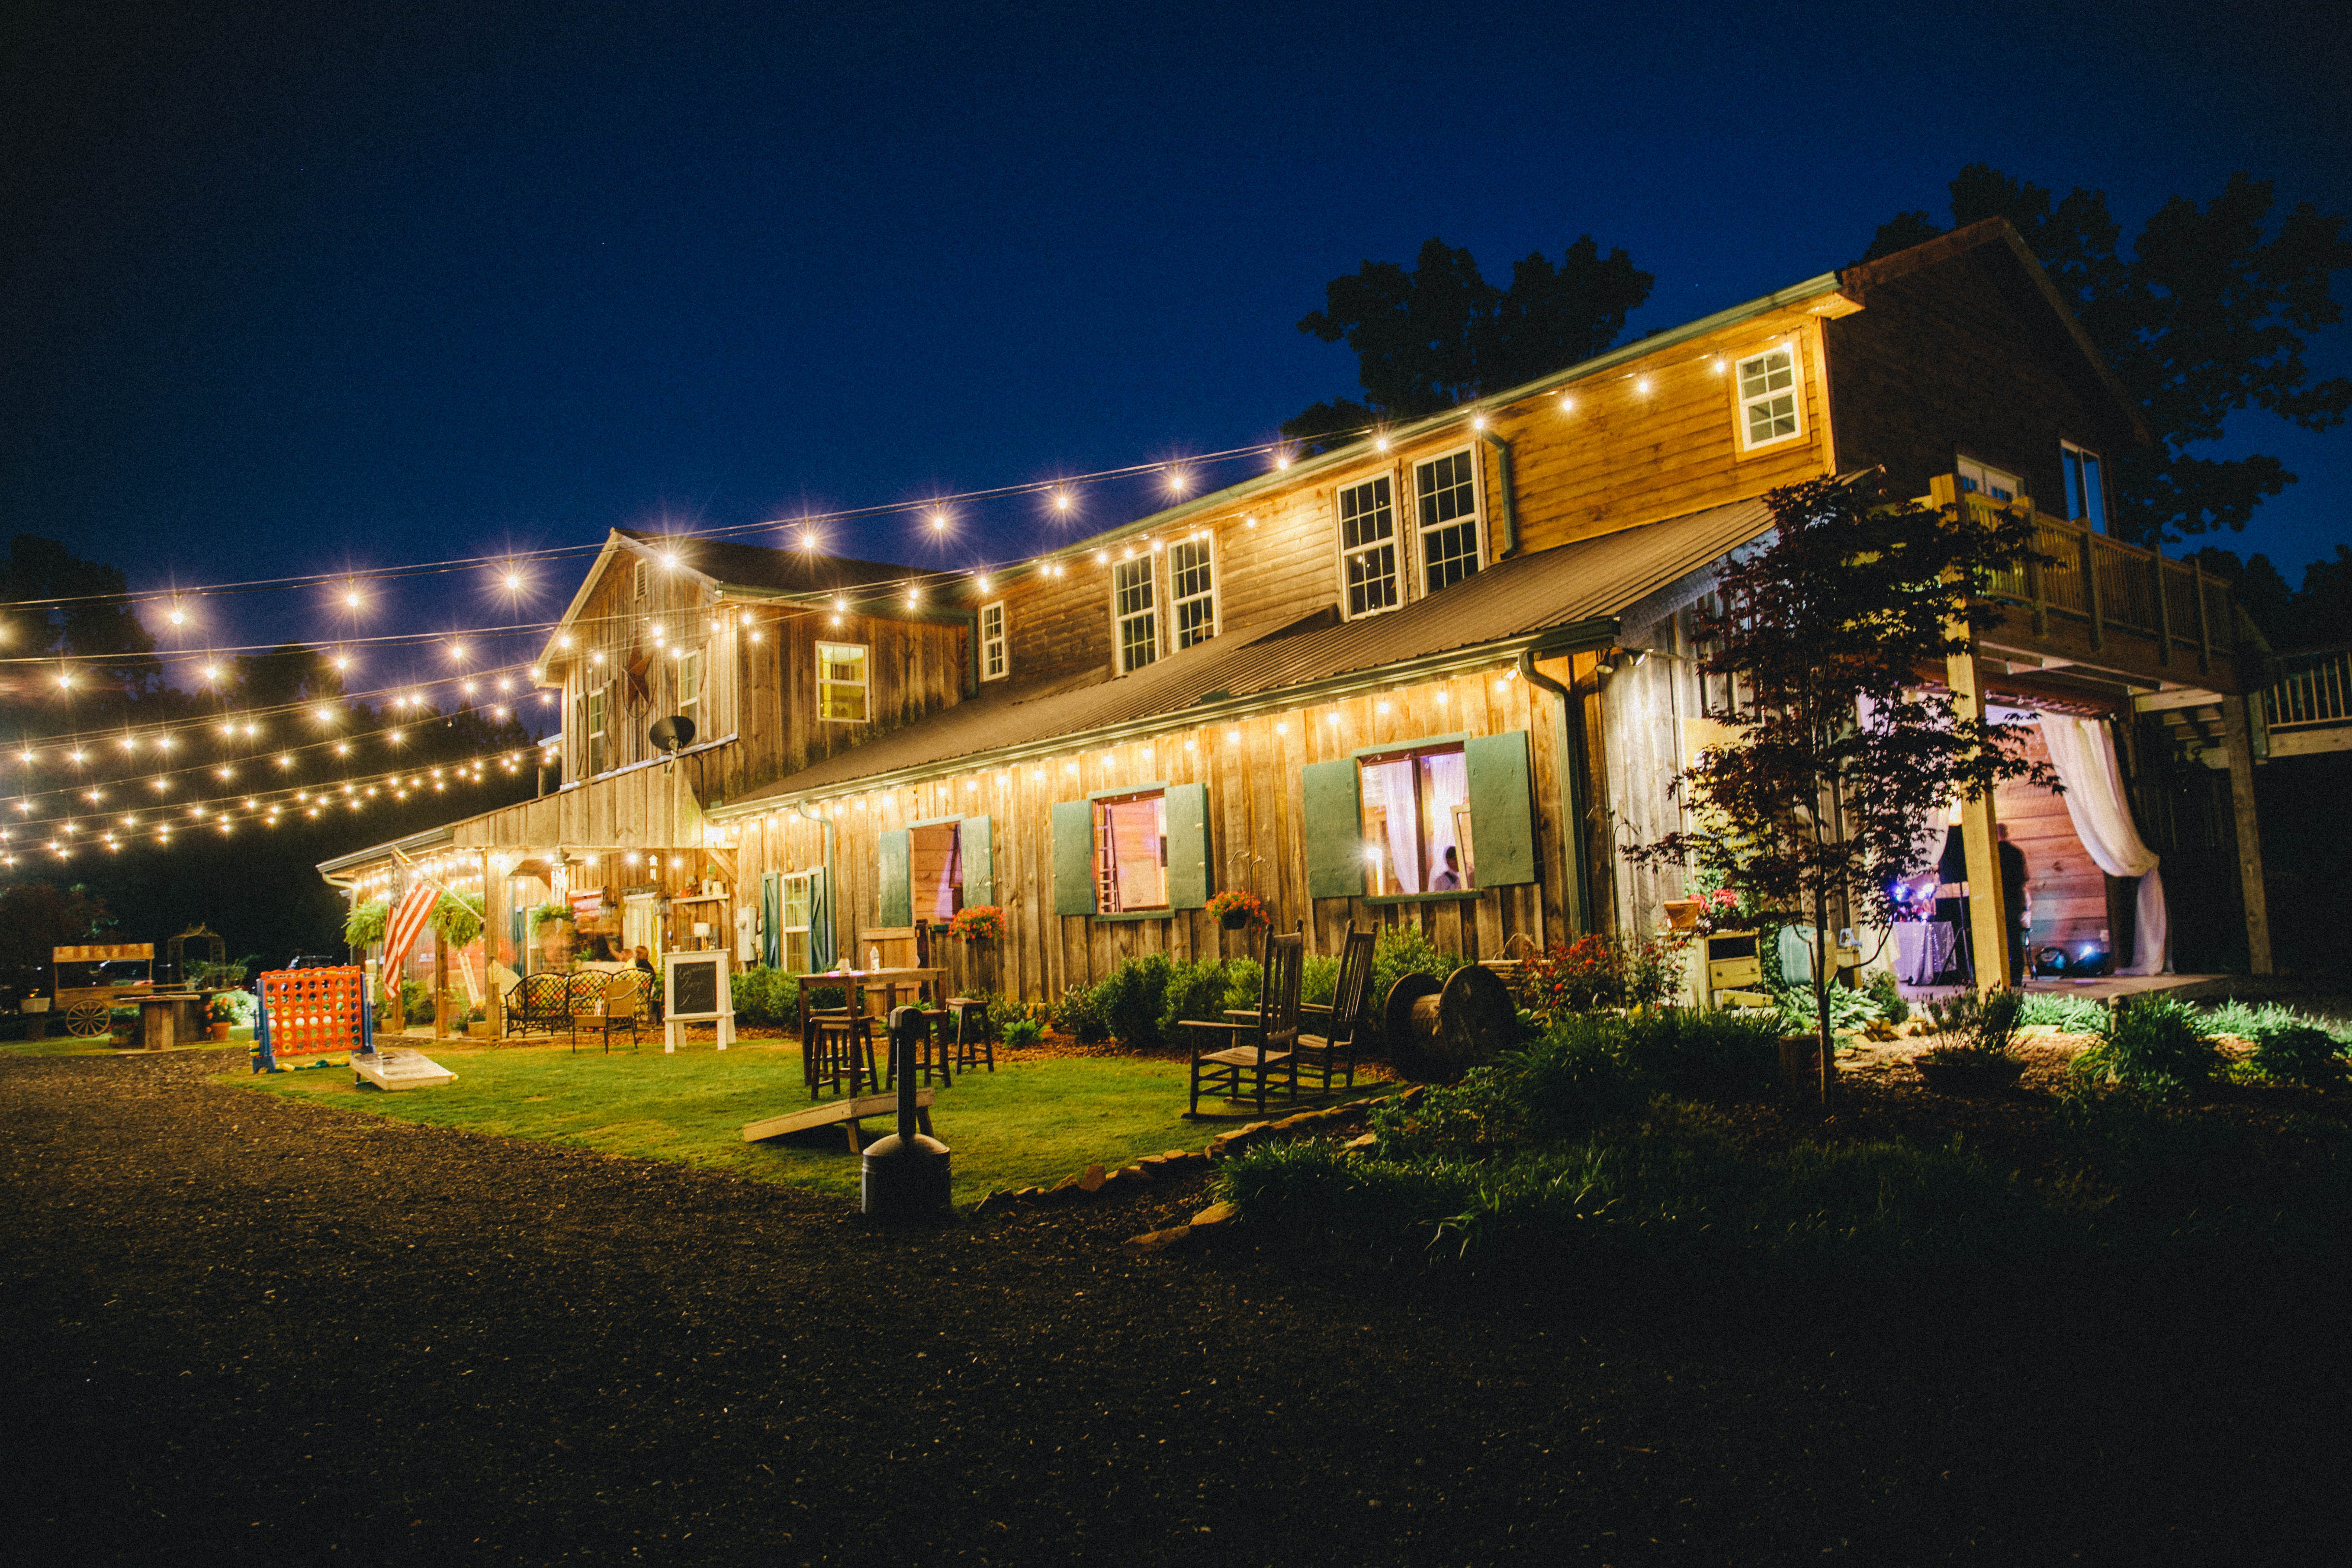 Cold Creek Farm | Venues & Event Spaces in 1491 Shoal Creek Rd - Dawsonville GA - Reviews - Photos - Phone Number